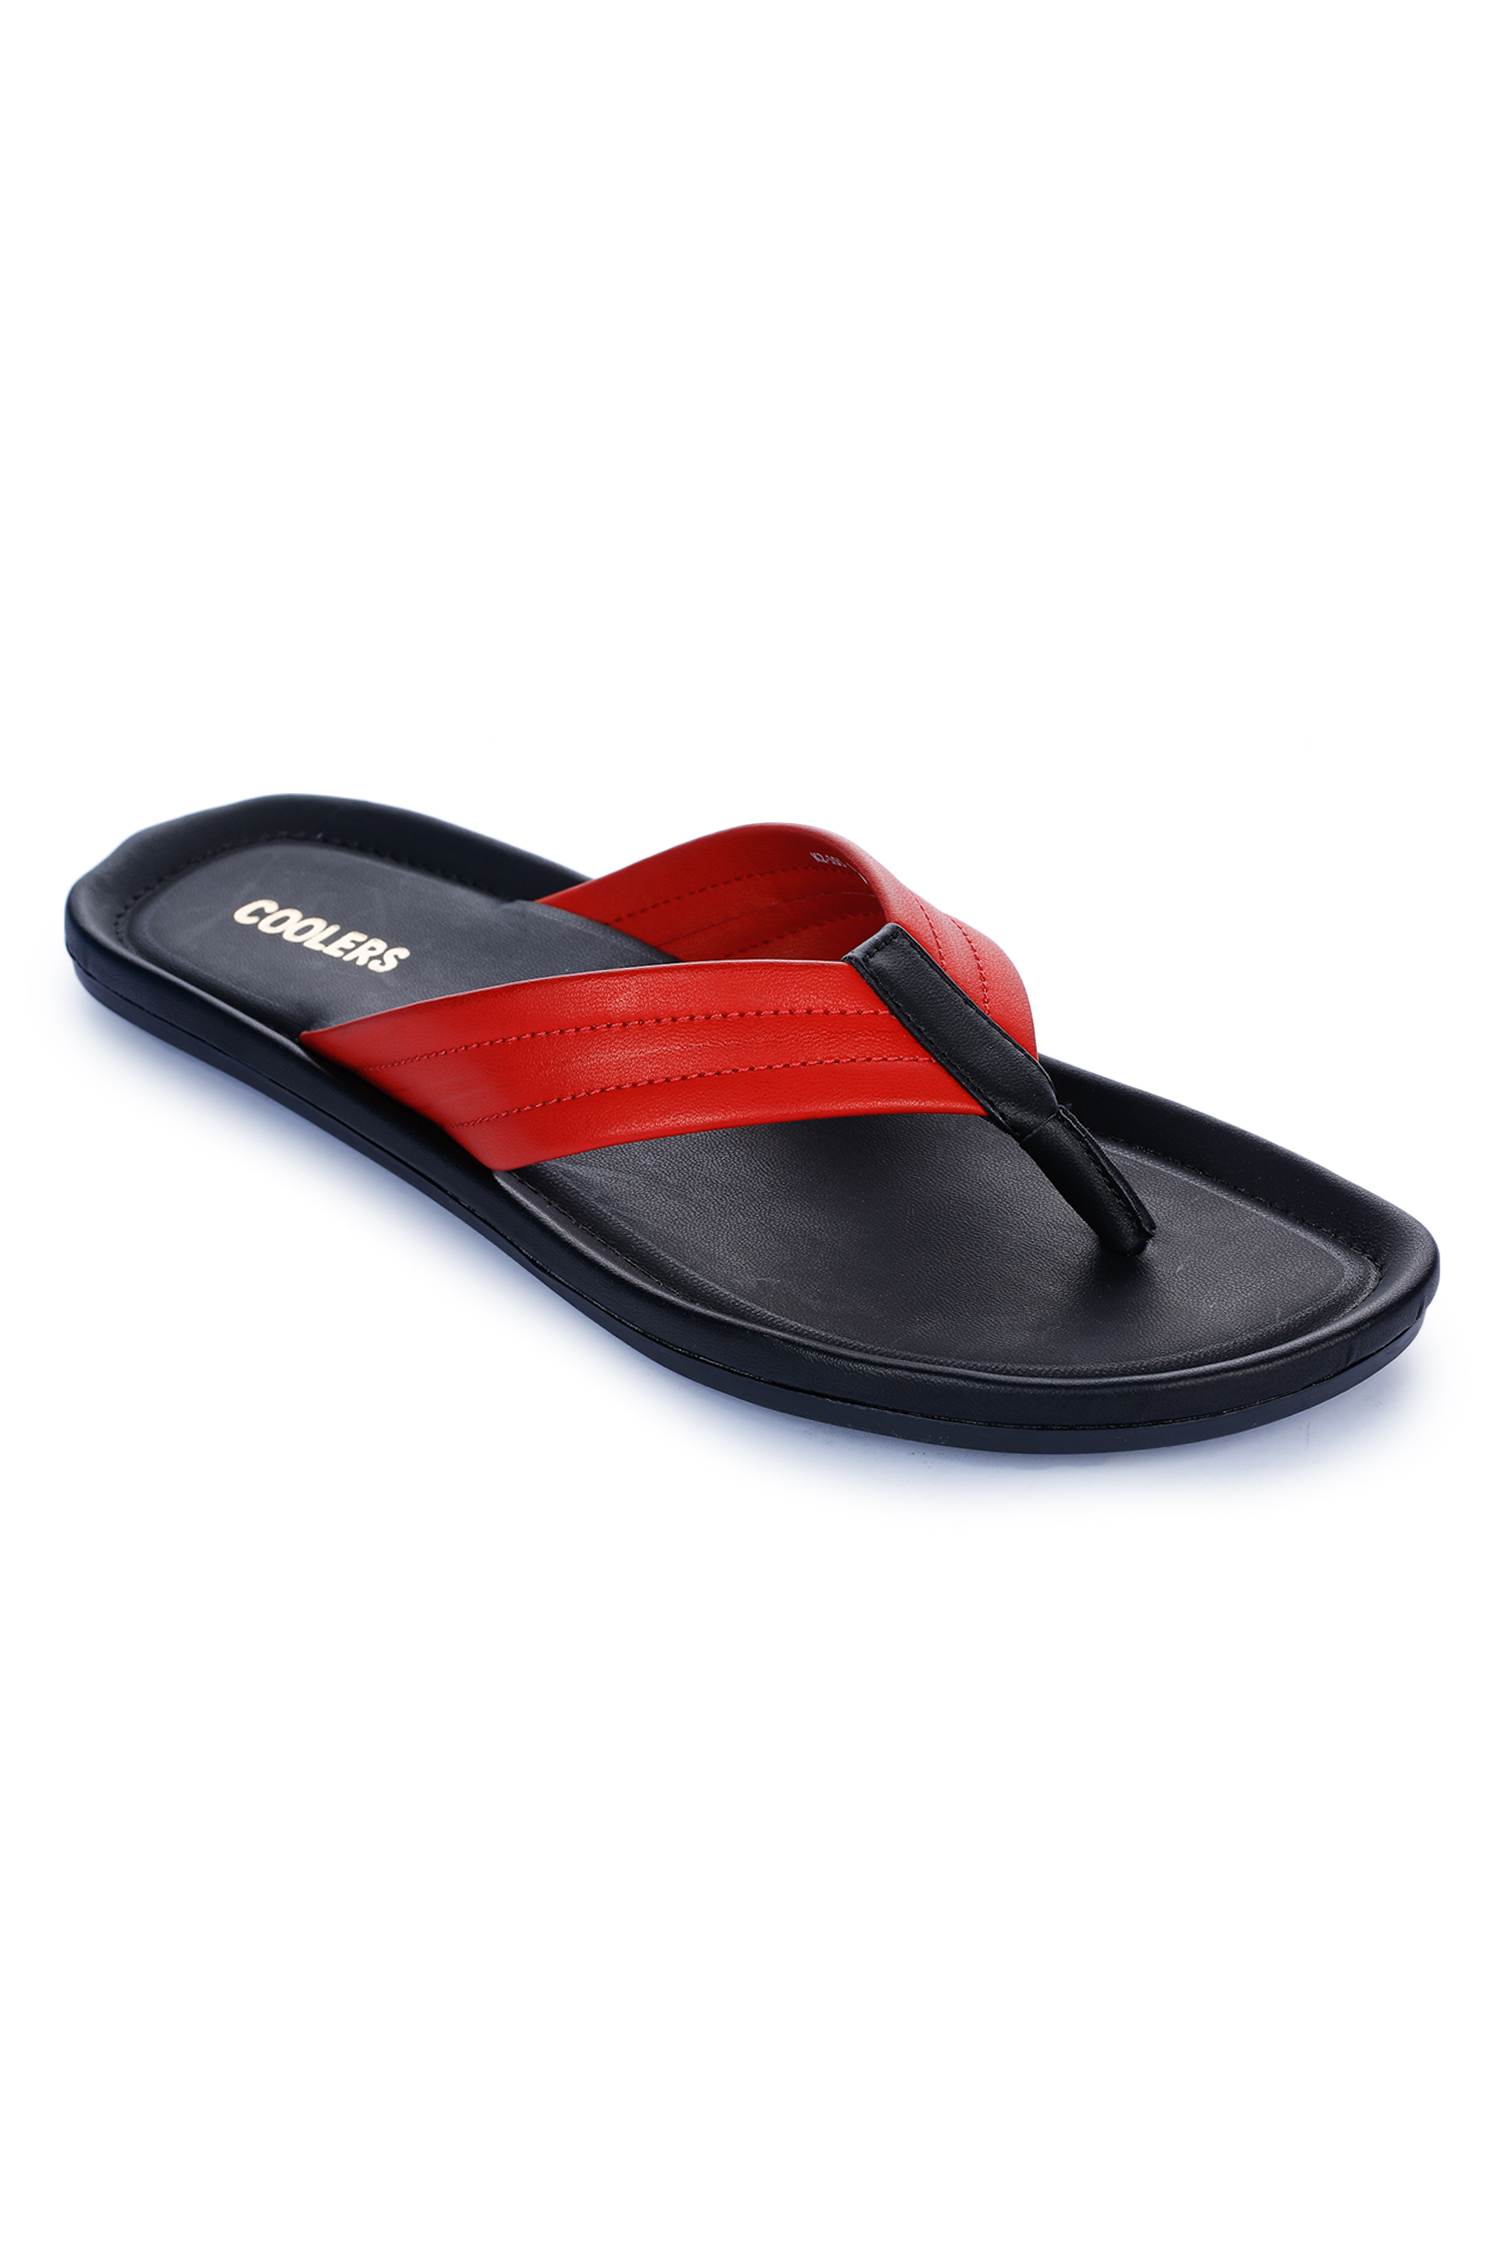 Liberty | Liberty Coolers Red Flip Flops K2-155_Red For - Men